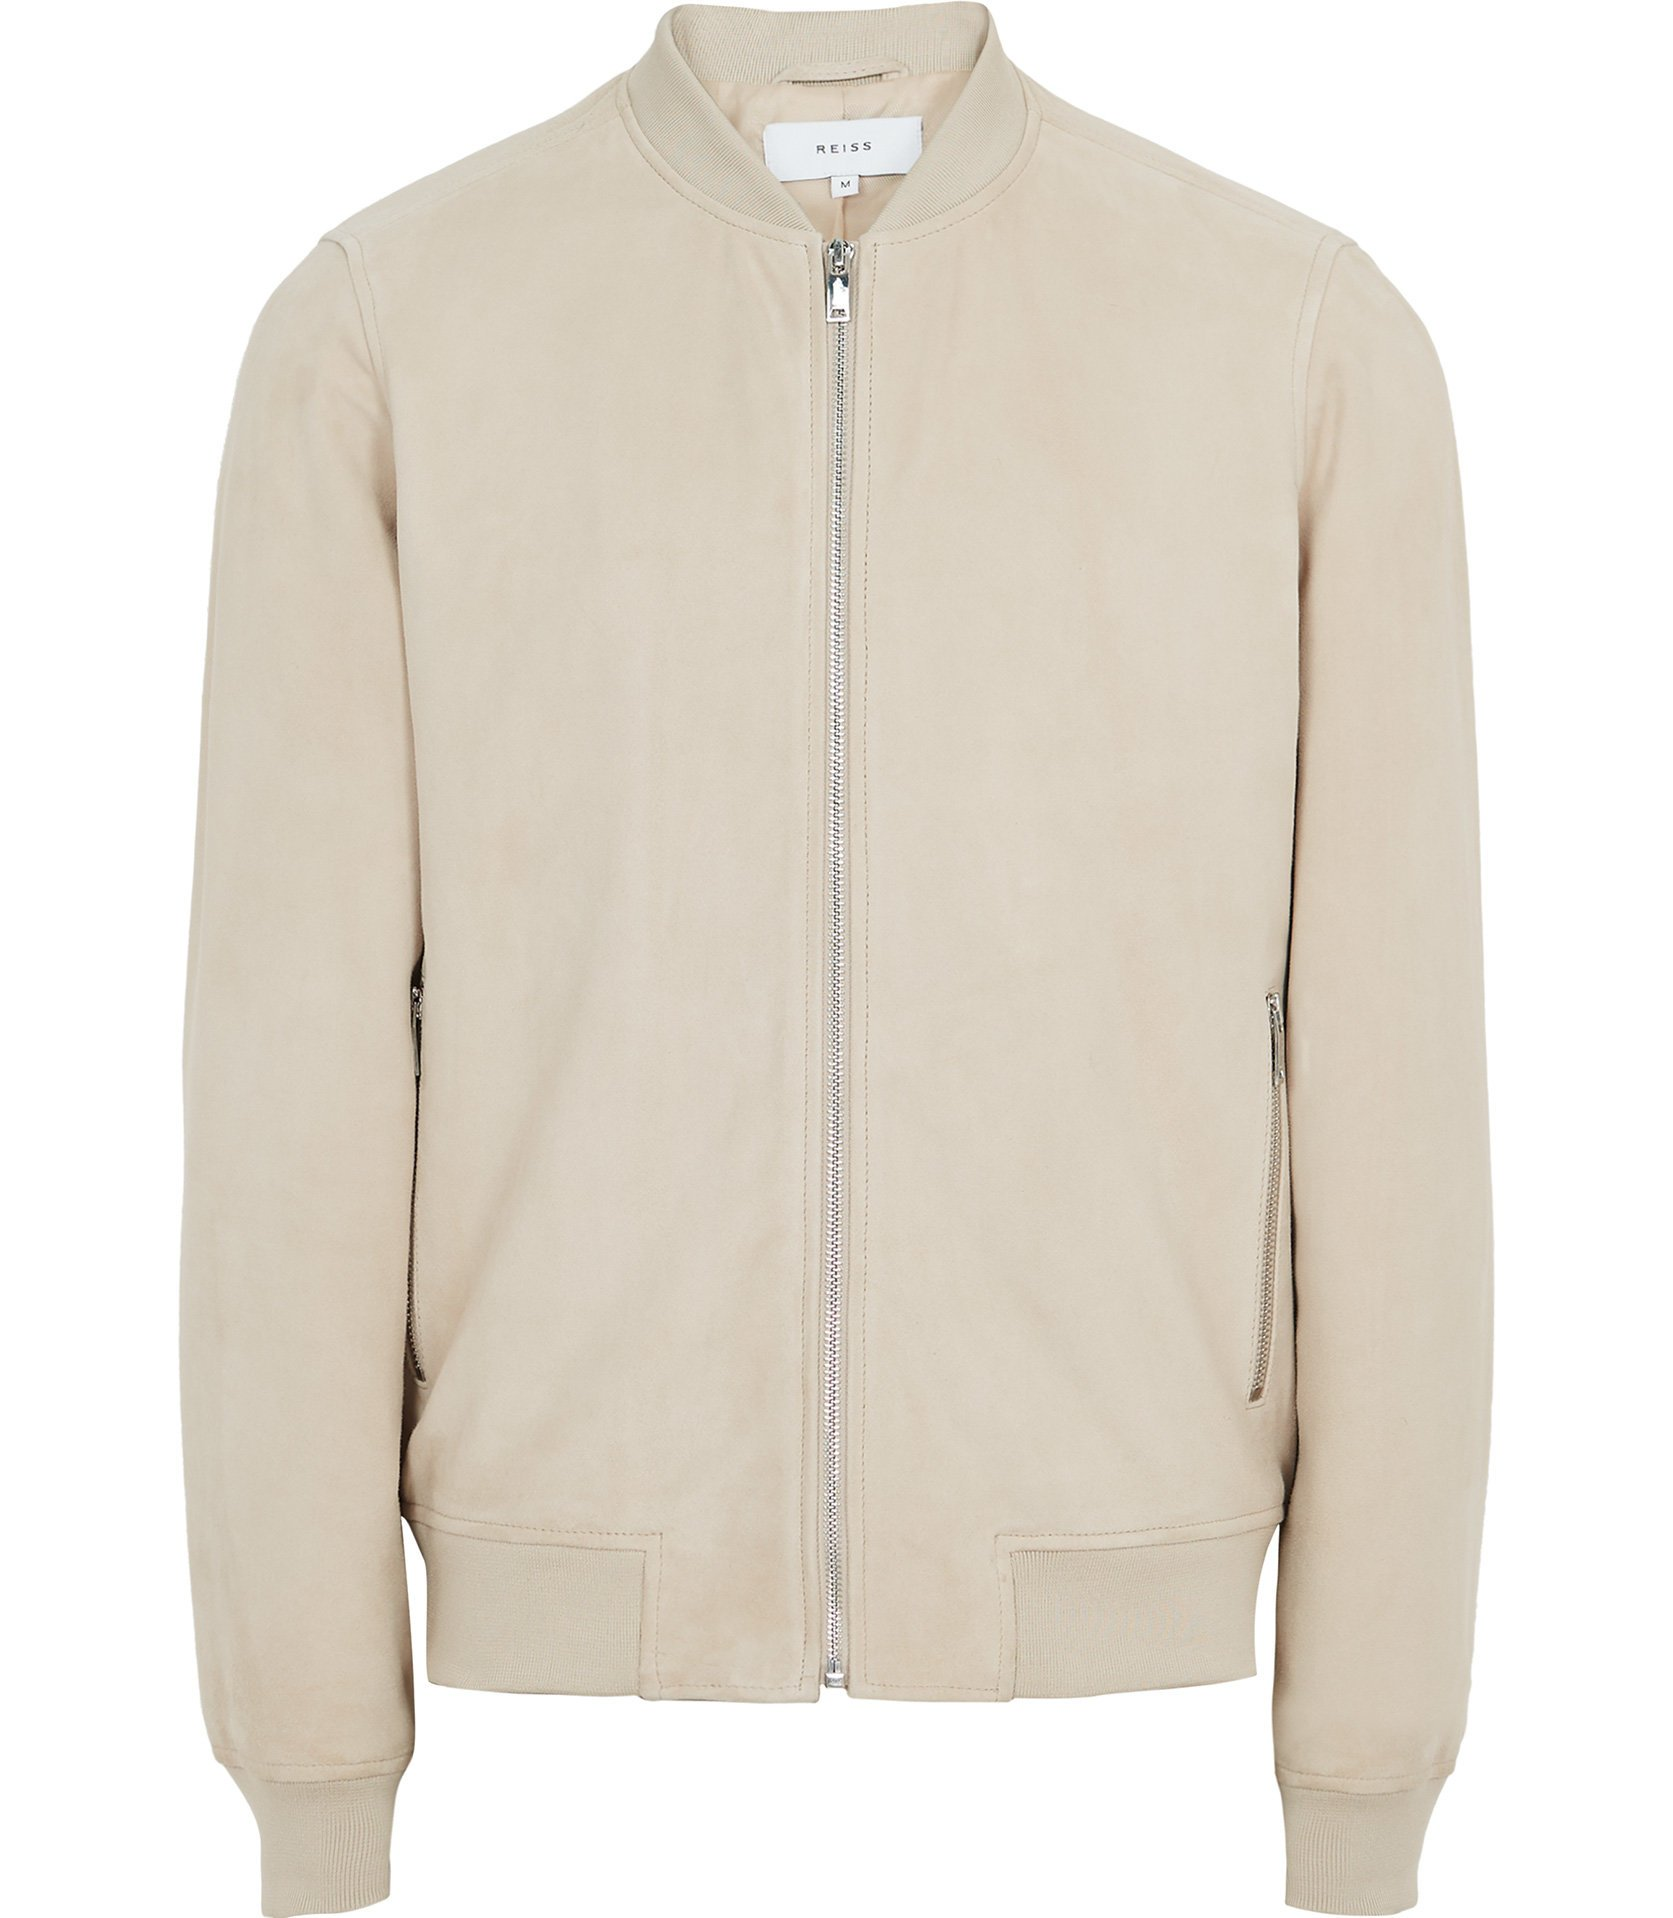 Reiss Stone Suede Bomber Jacket